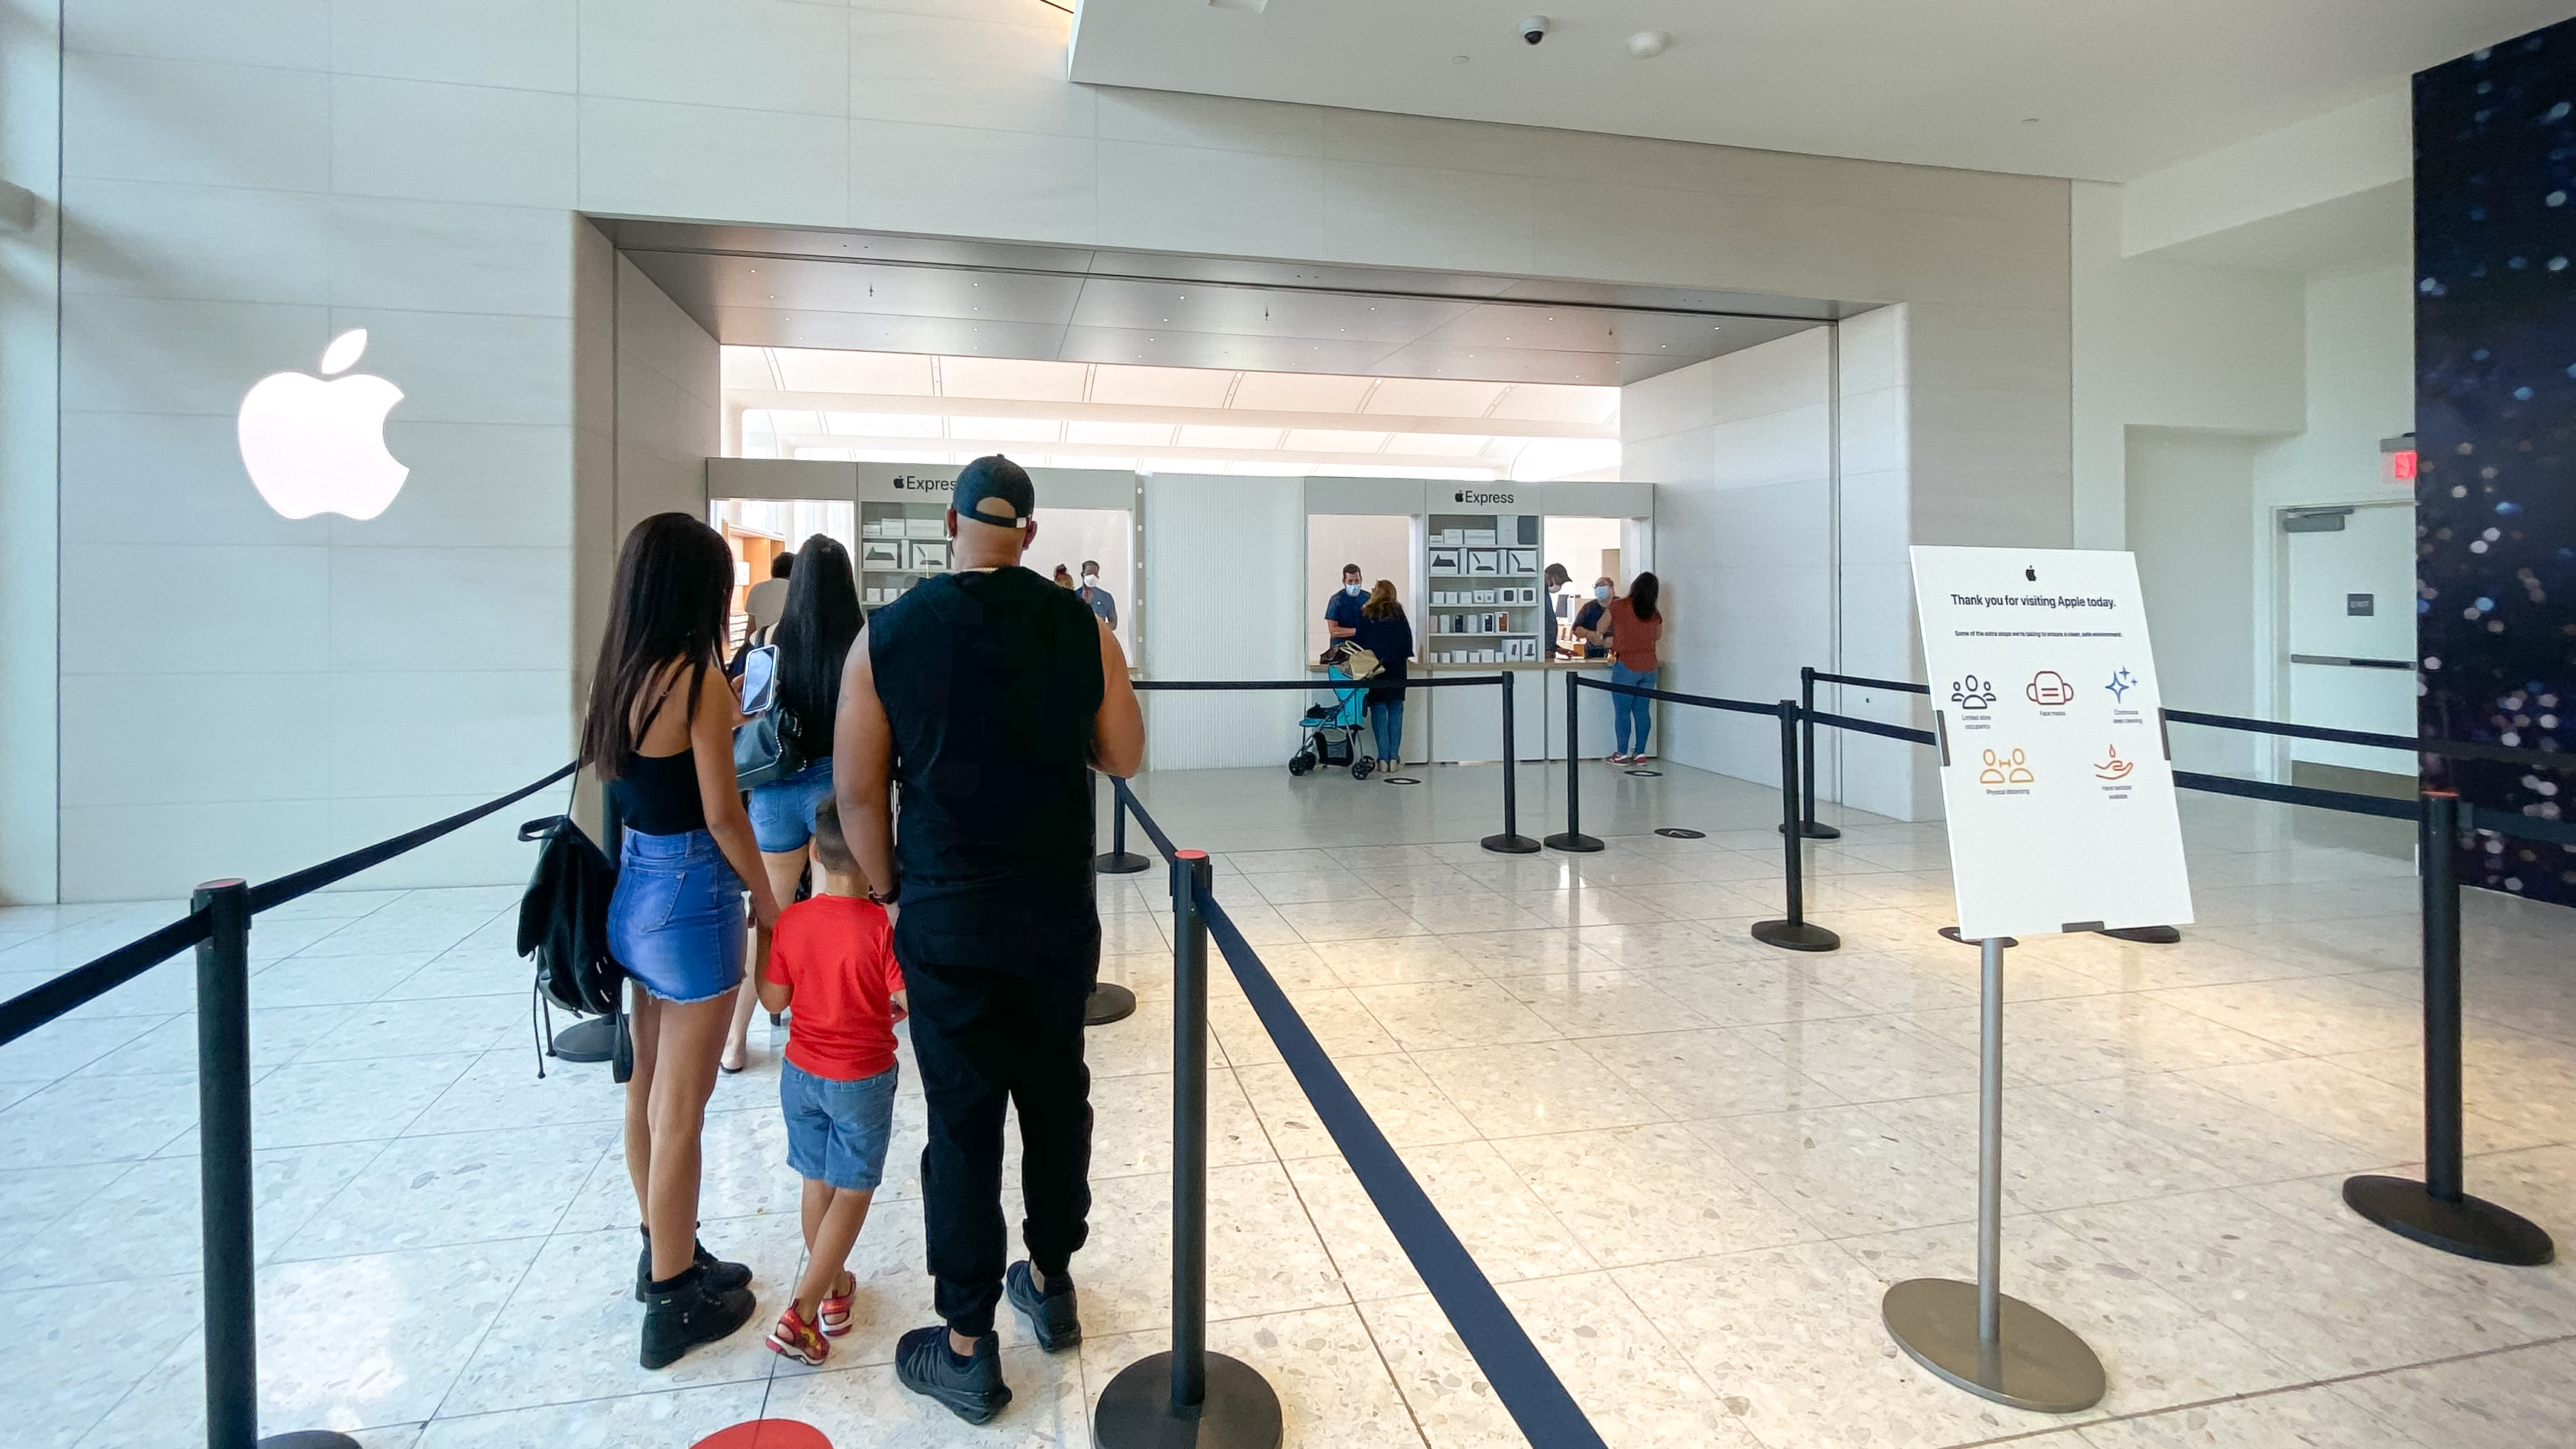 photo of Apple prepares safe iPhone launch season with Express Pickup locations and store reopenings image